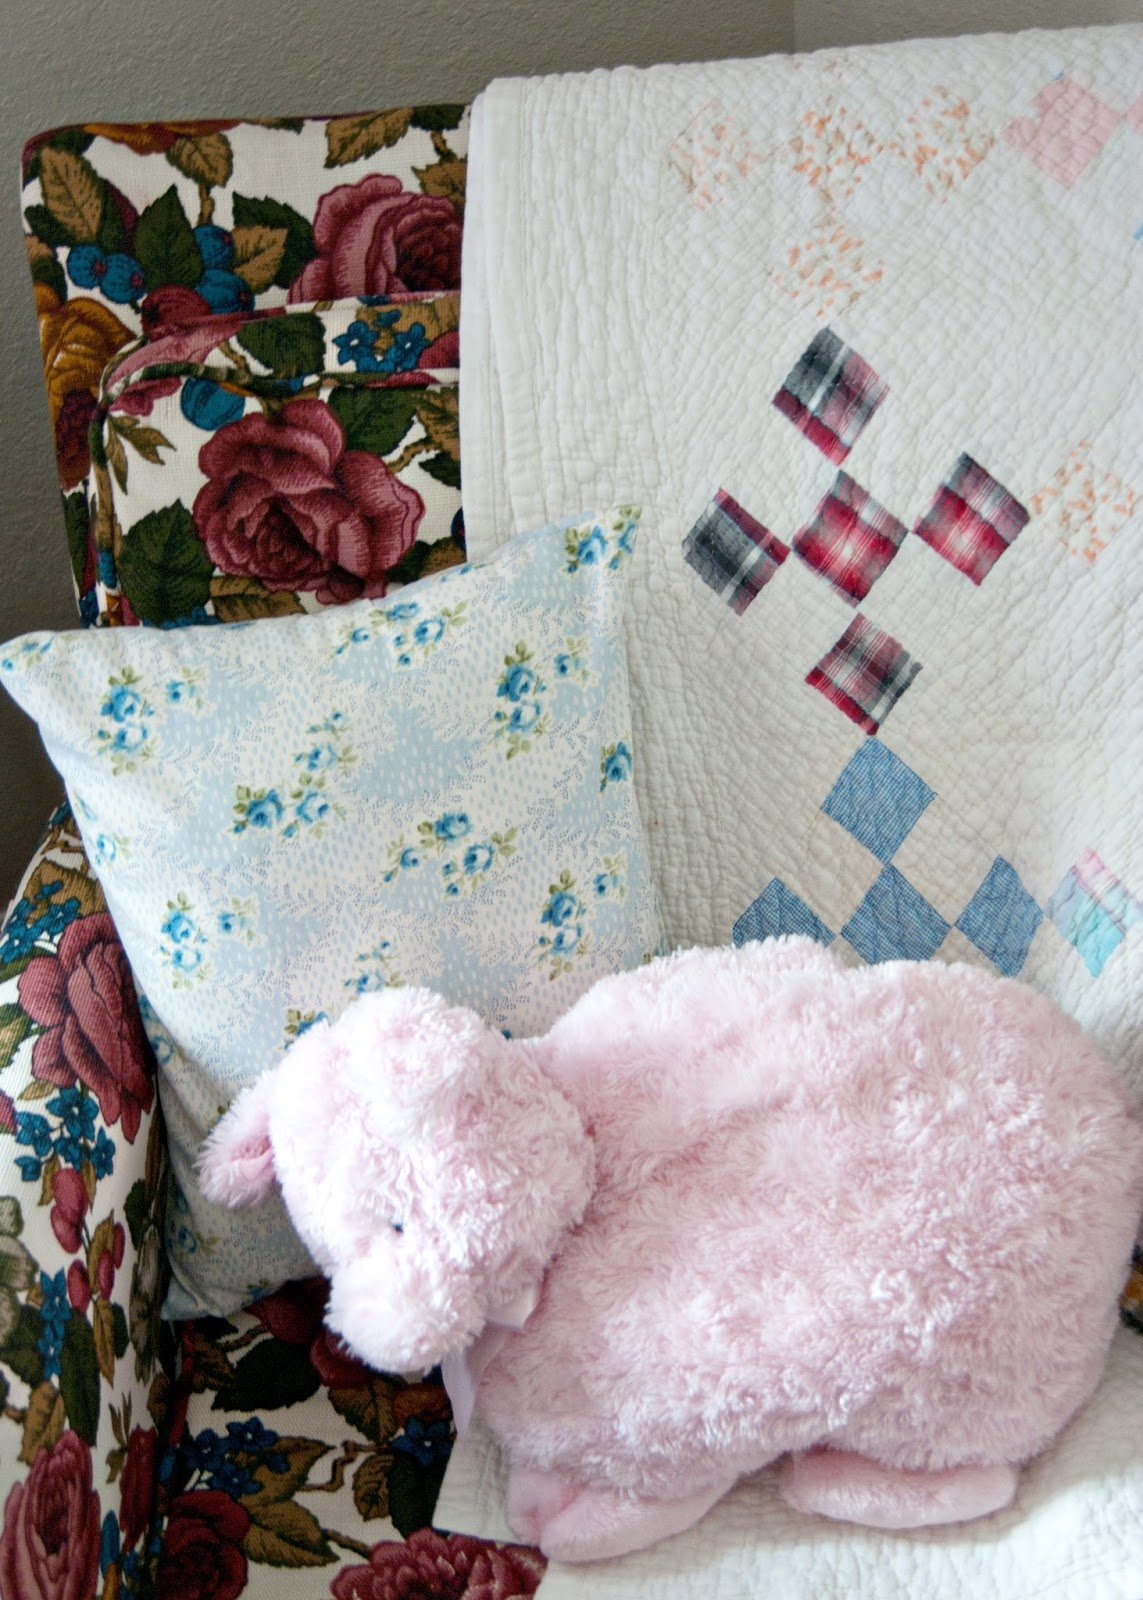 Granny chic chair, vintage baby quilt and stuffed pig